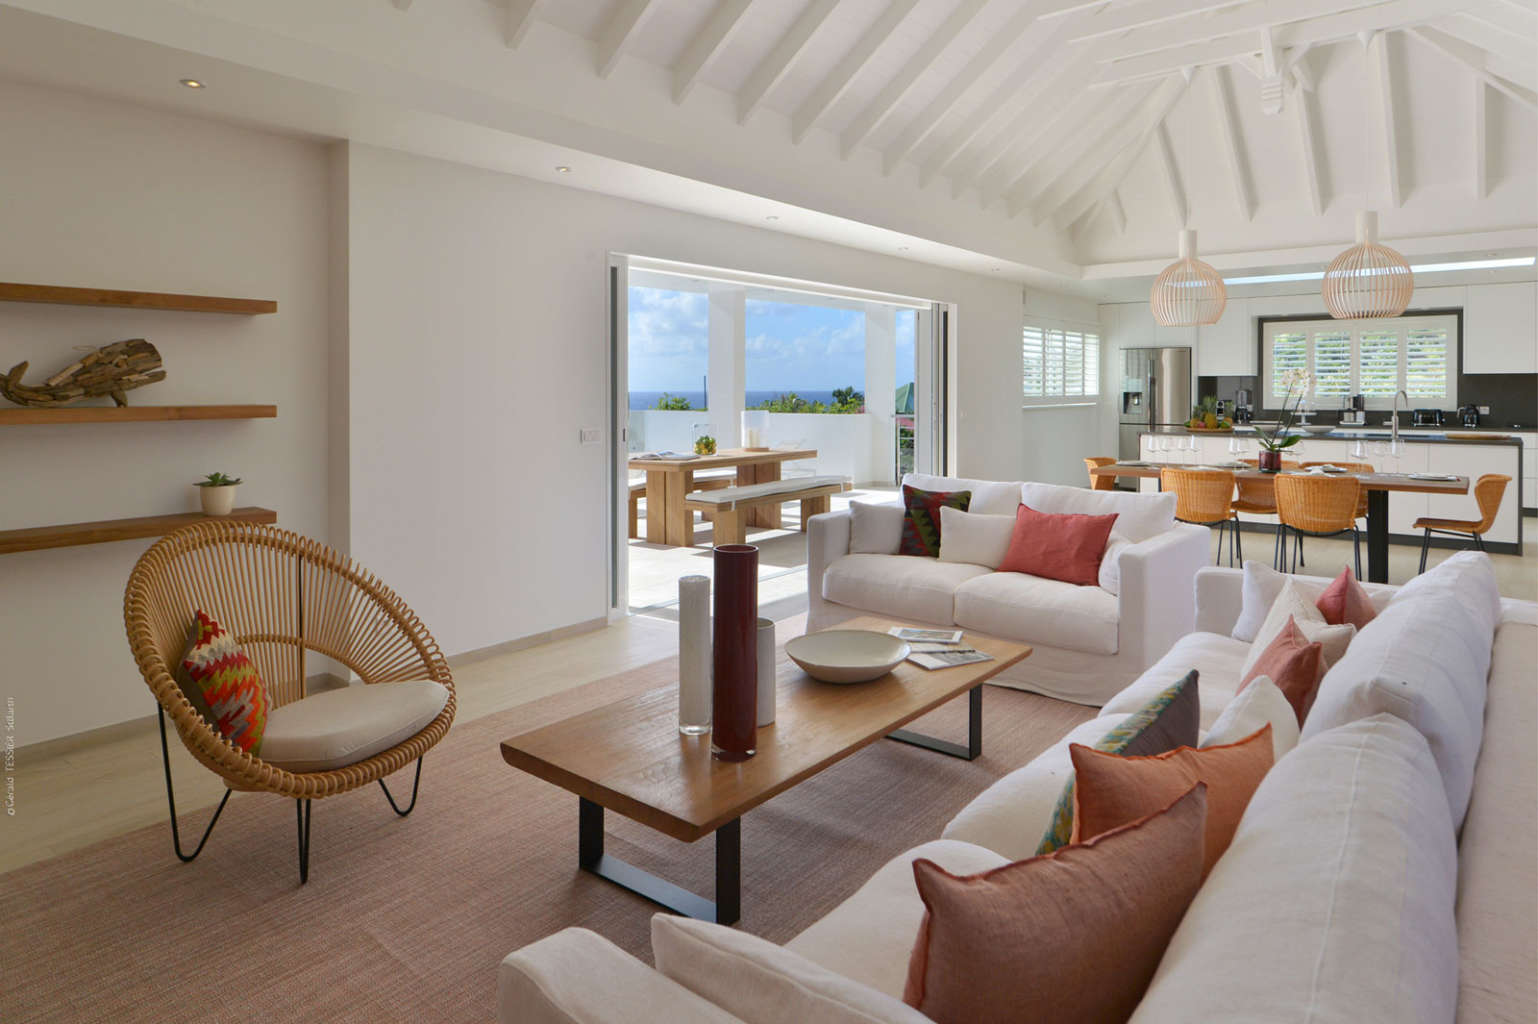 Villa South Wave - 2 Bedroom Villa For Rent with Full Air Conditioning - Living room